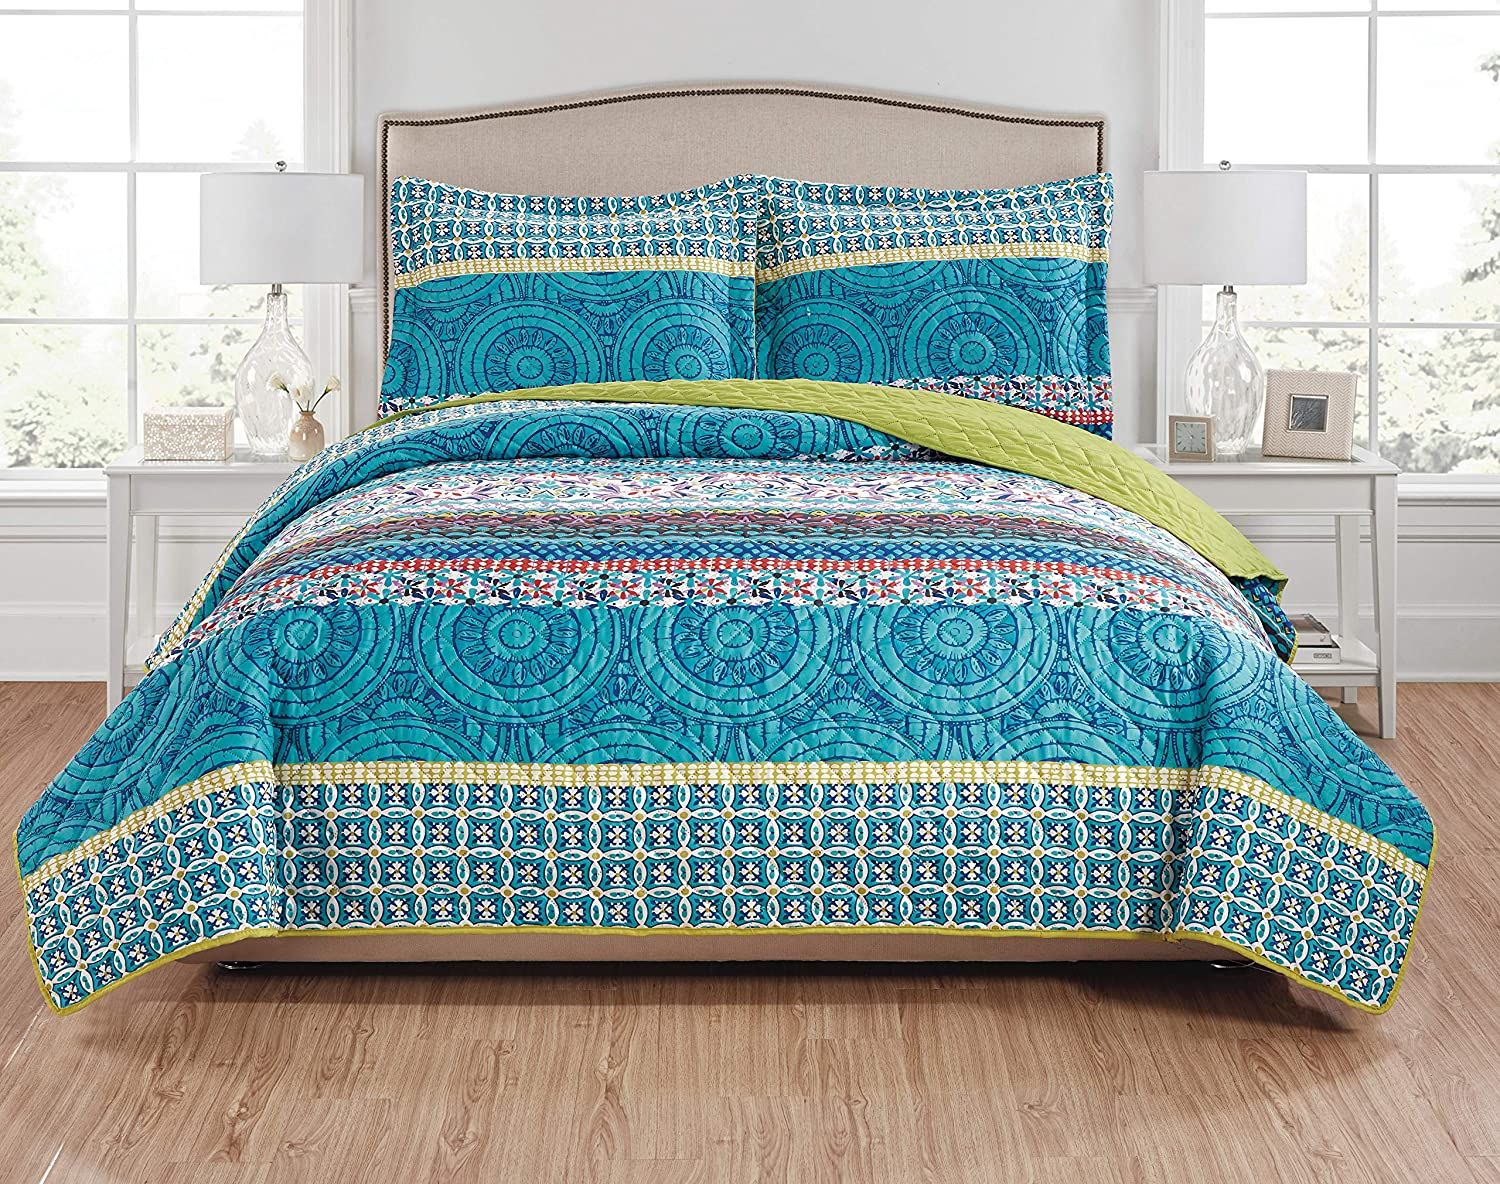 100/% Cotton Blue and White Floral Pattern Duvet Cover Set Full Queen Duvet Cover and 2 Pillowcases Included COMIN16JU028875